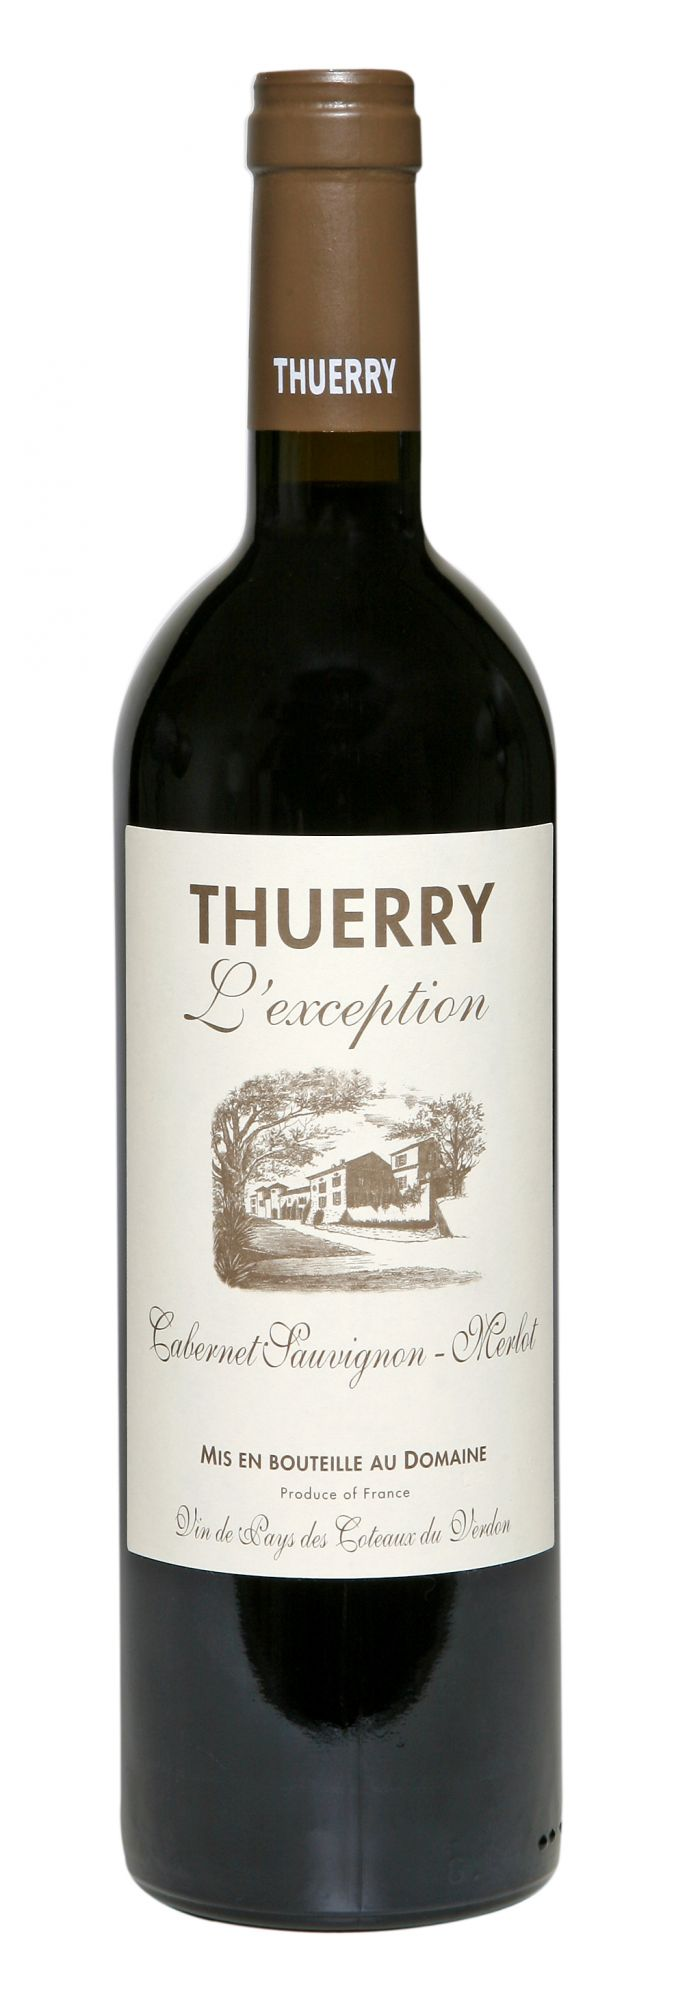 Château Thuerry, l'Exception red